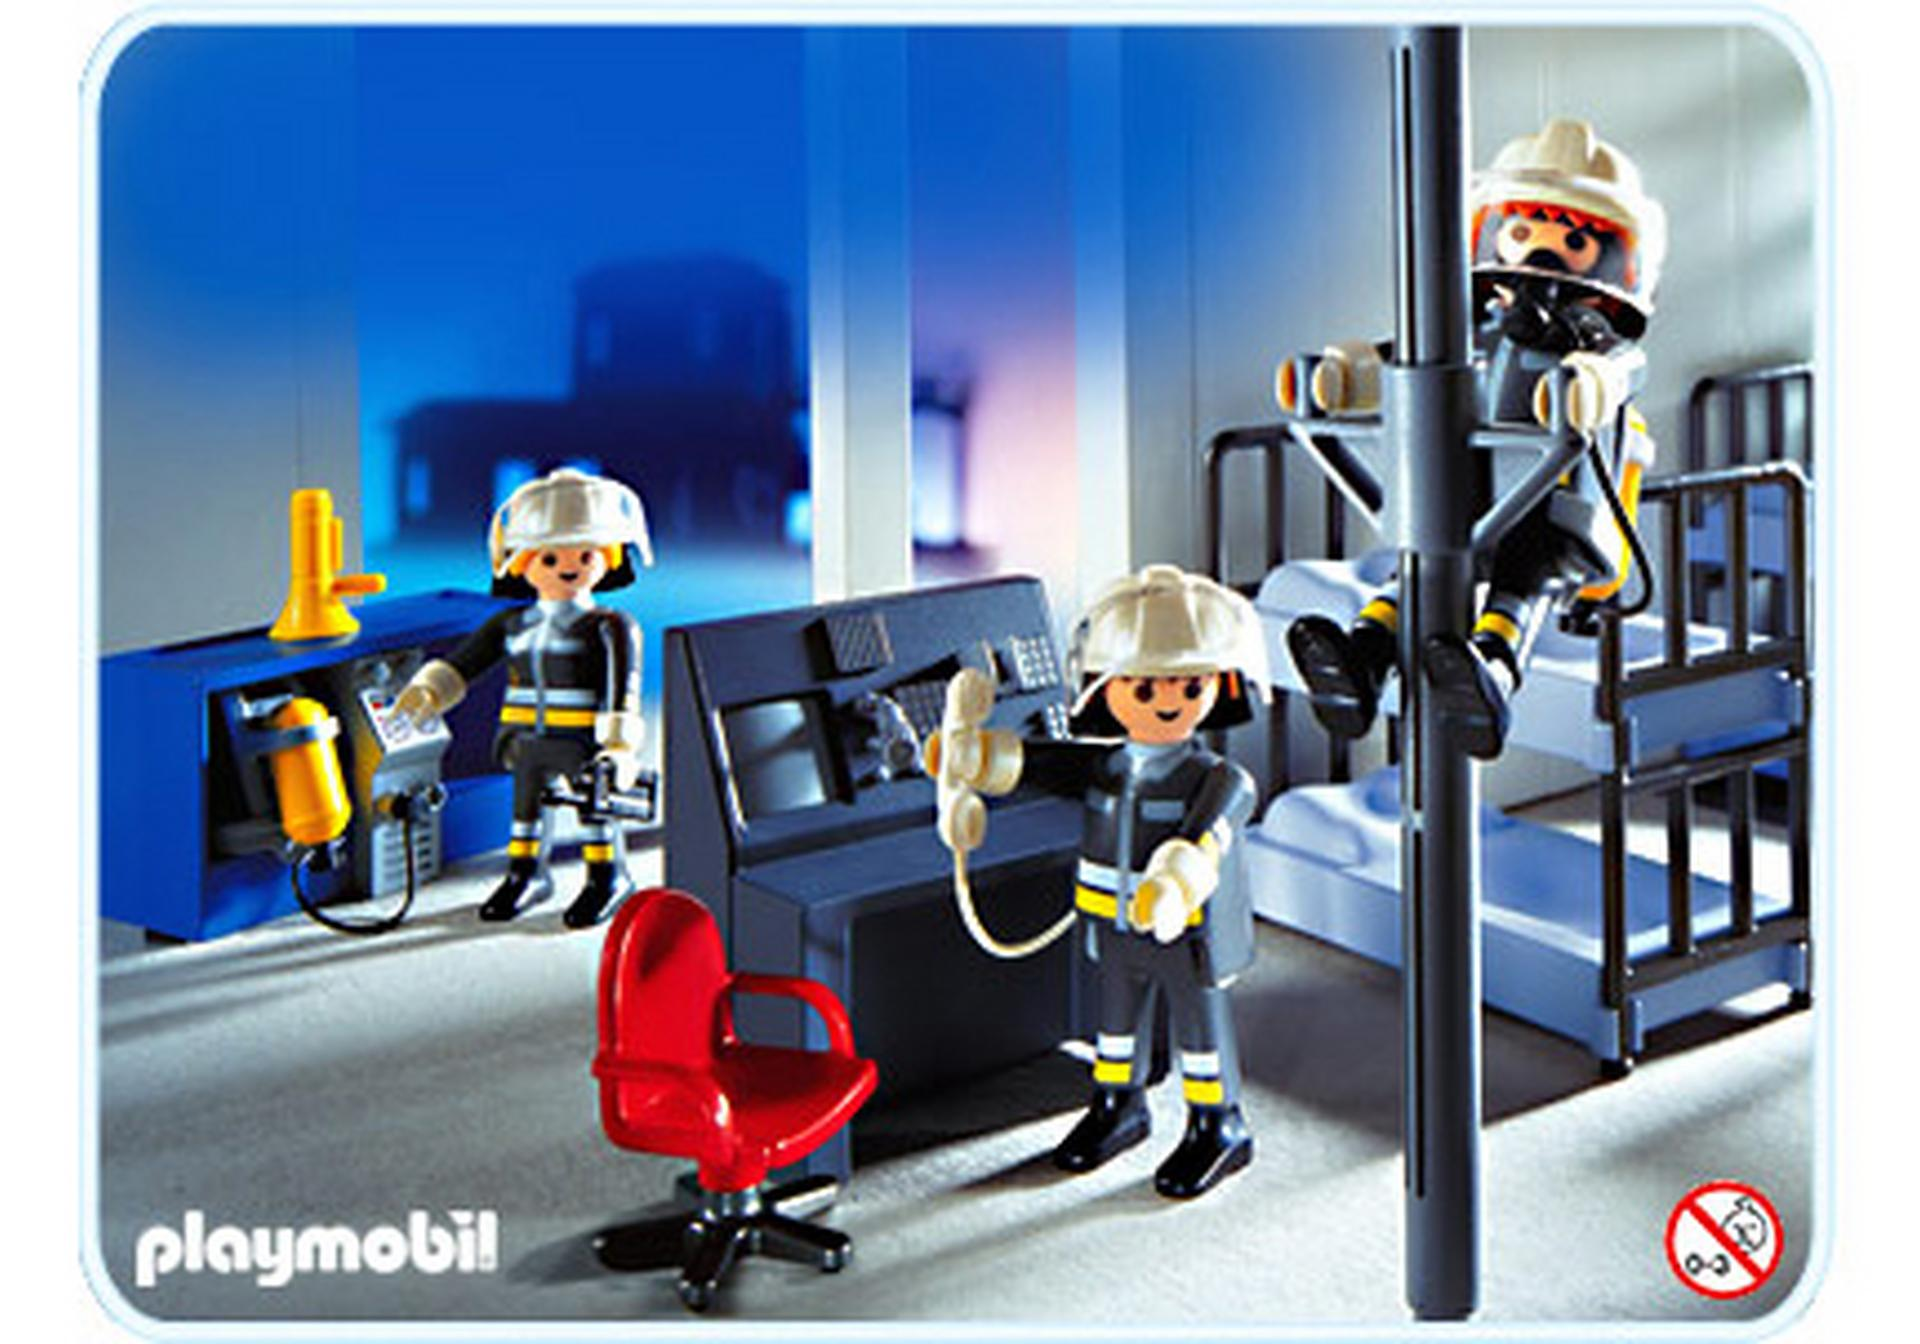 Pompiers salle d intervention 3176 a playmobil france - Playmobil pompiers ...